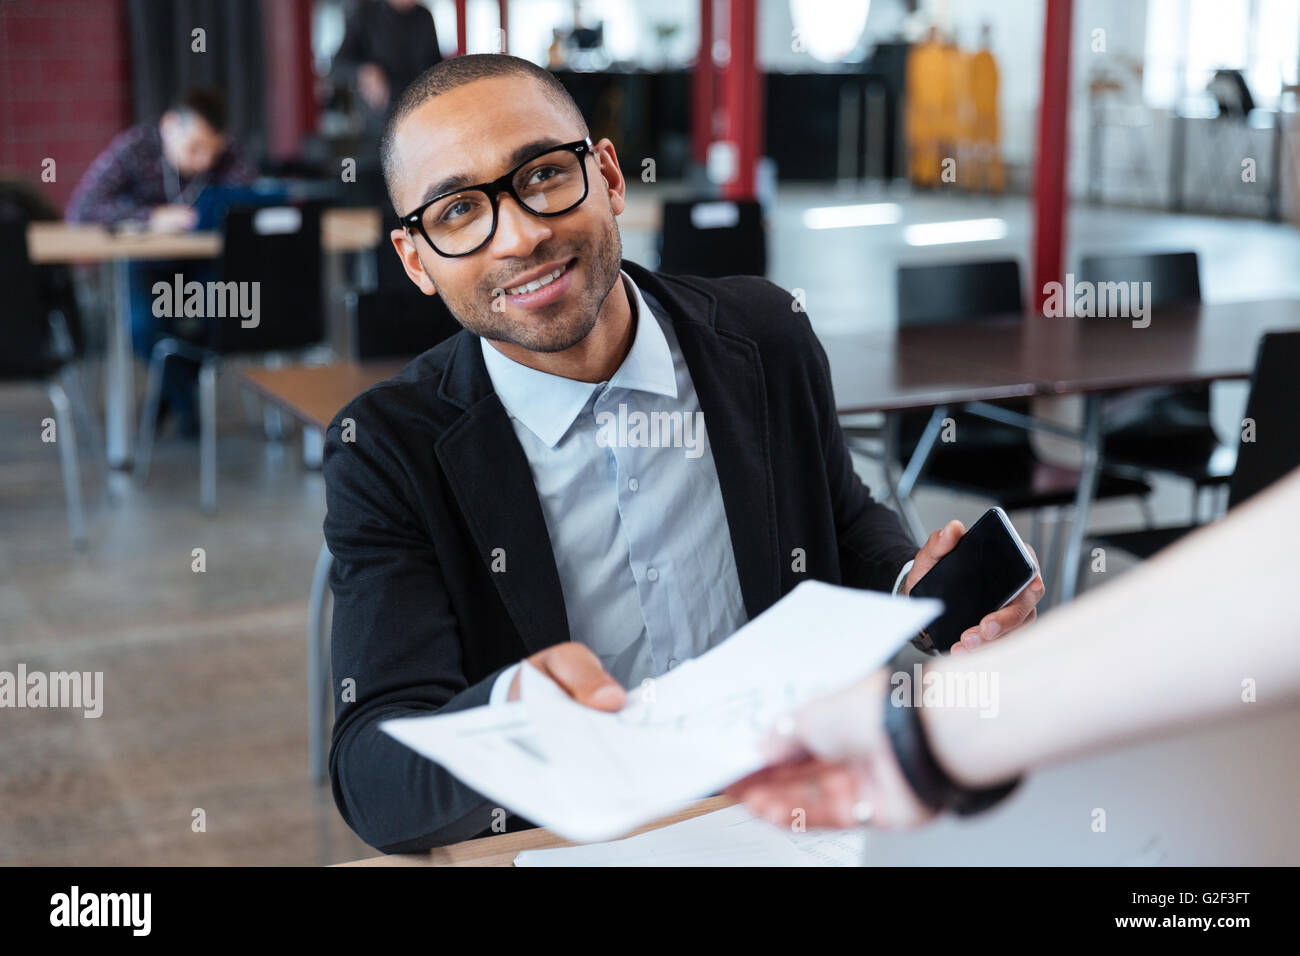 Young businessman giving papers to someone in the office - Stock Image